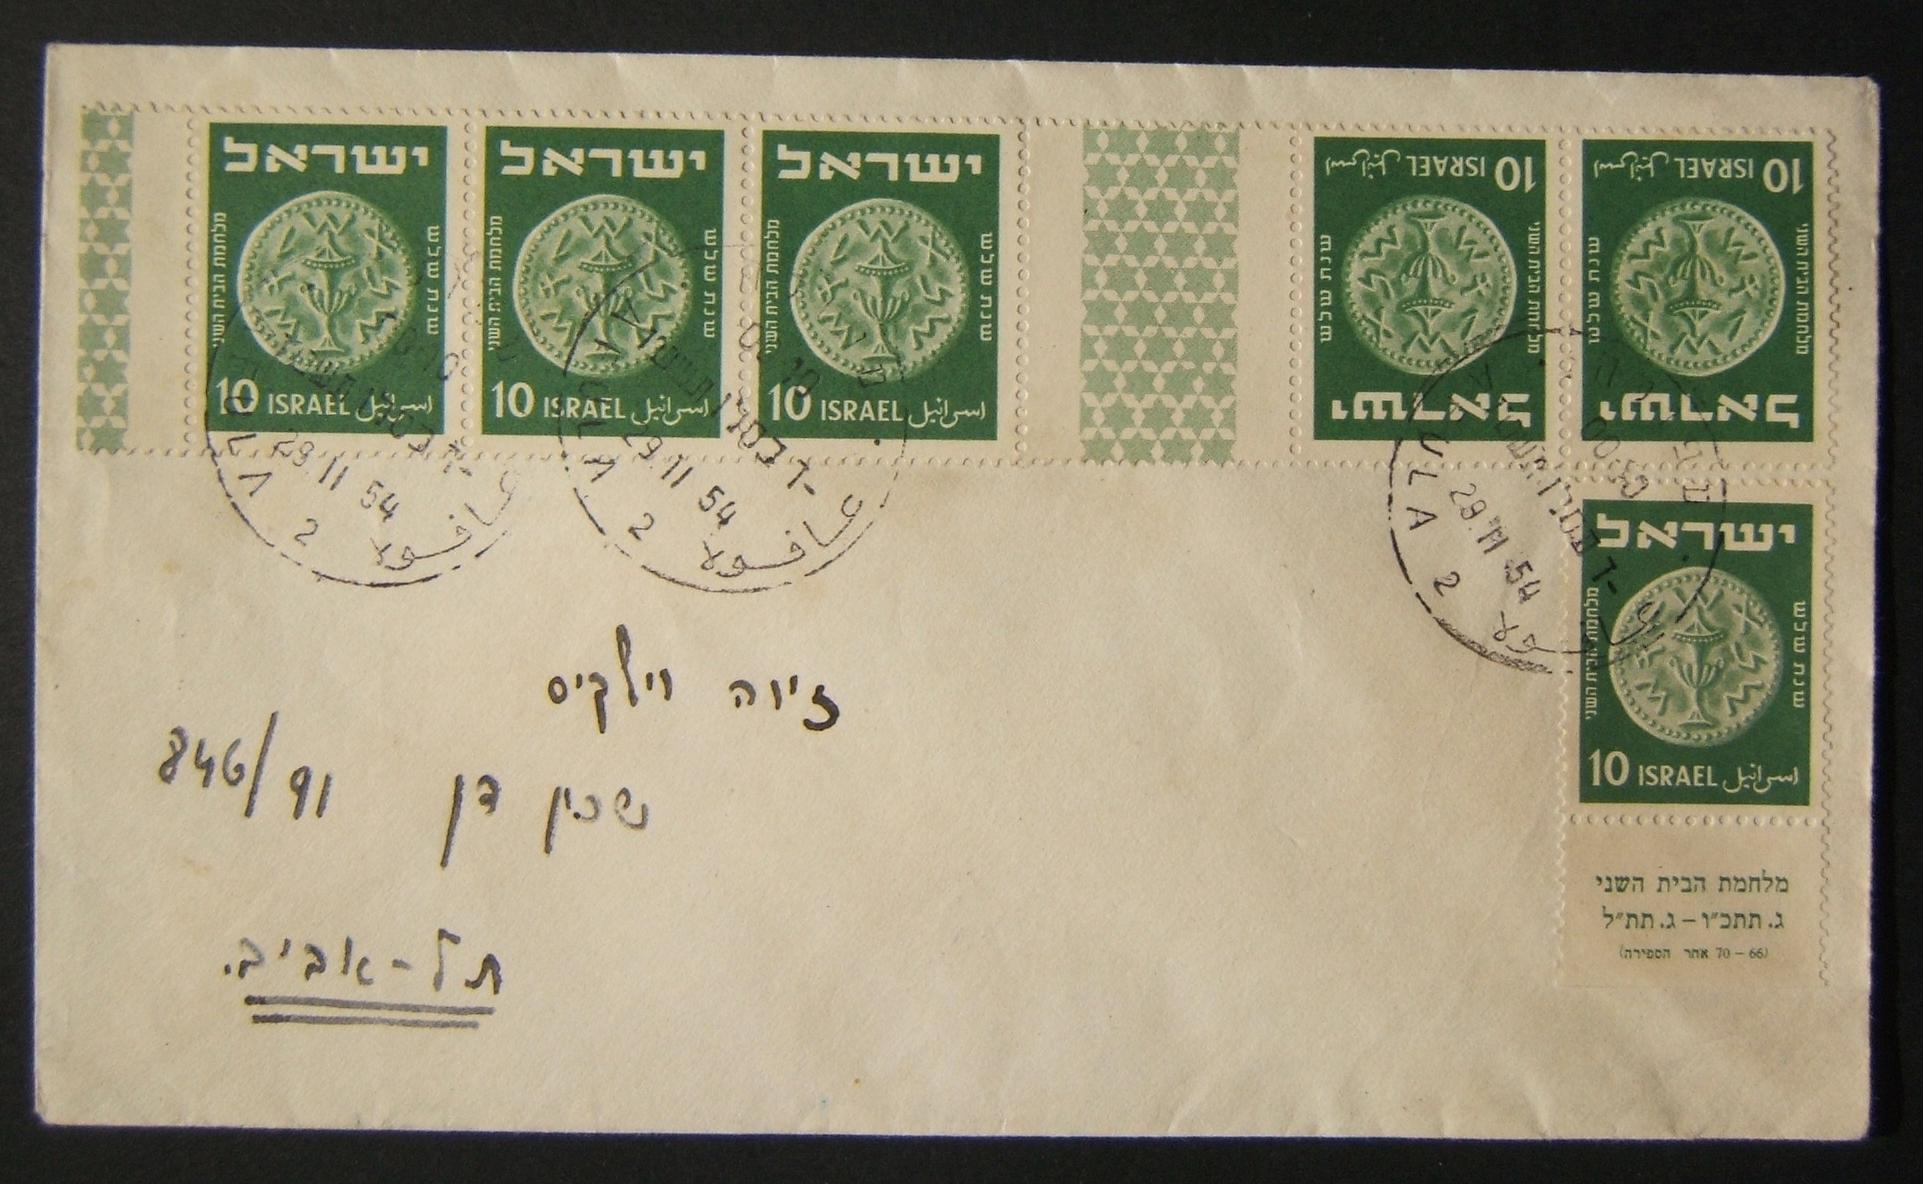 1950 3rd Coinage mail: 29-11-54 cover ex AFULA to TLV franked 60pr at the DO-5 period domestic letter rate, using 10pr tabbed single (Ba43) + horizontal strip containing tete-beche